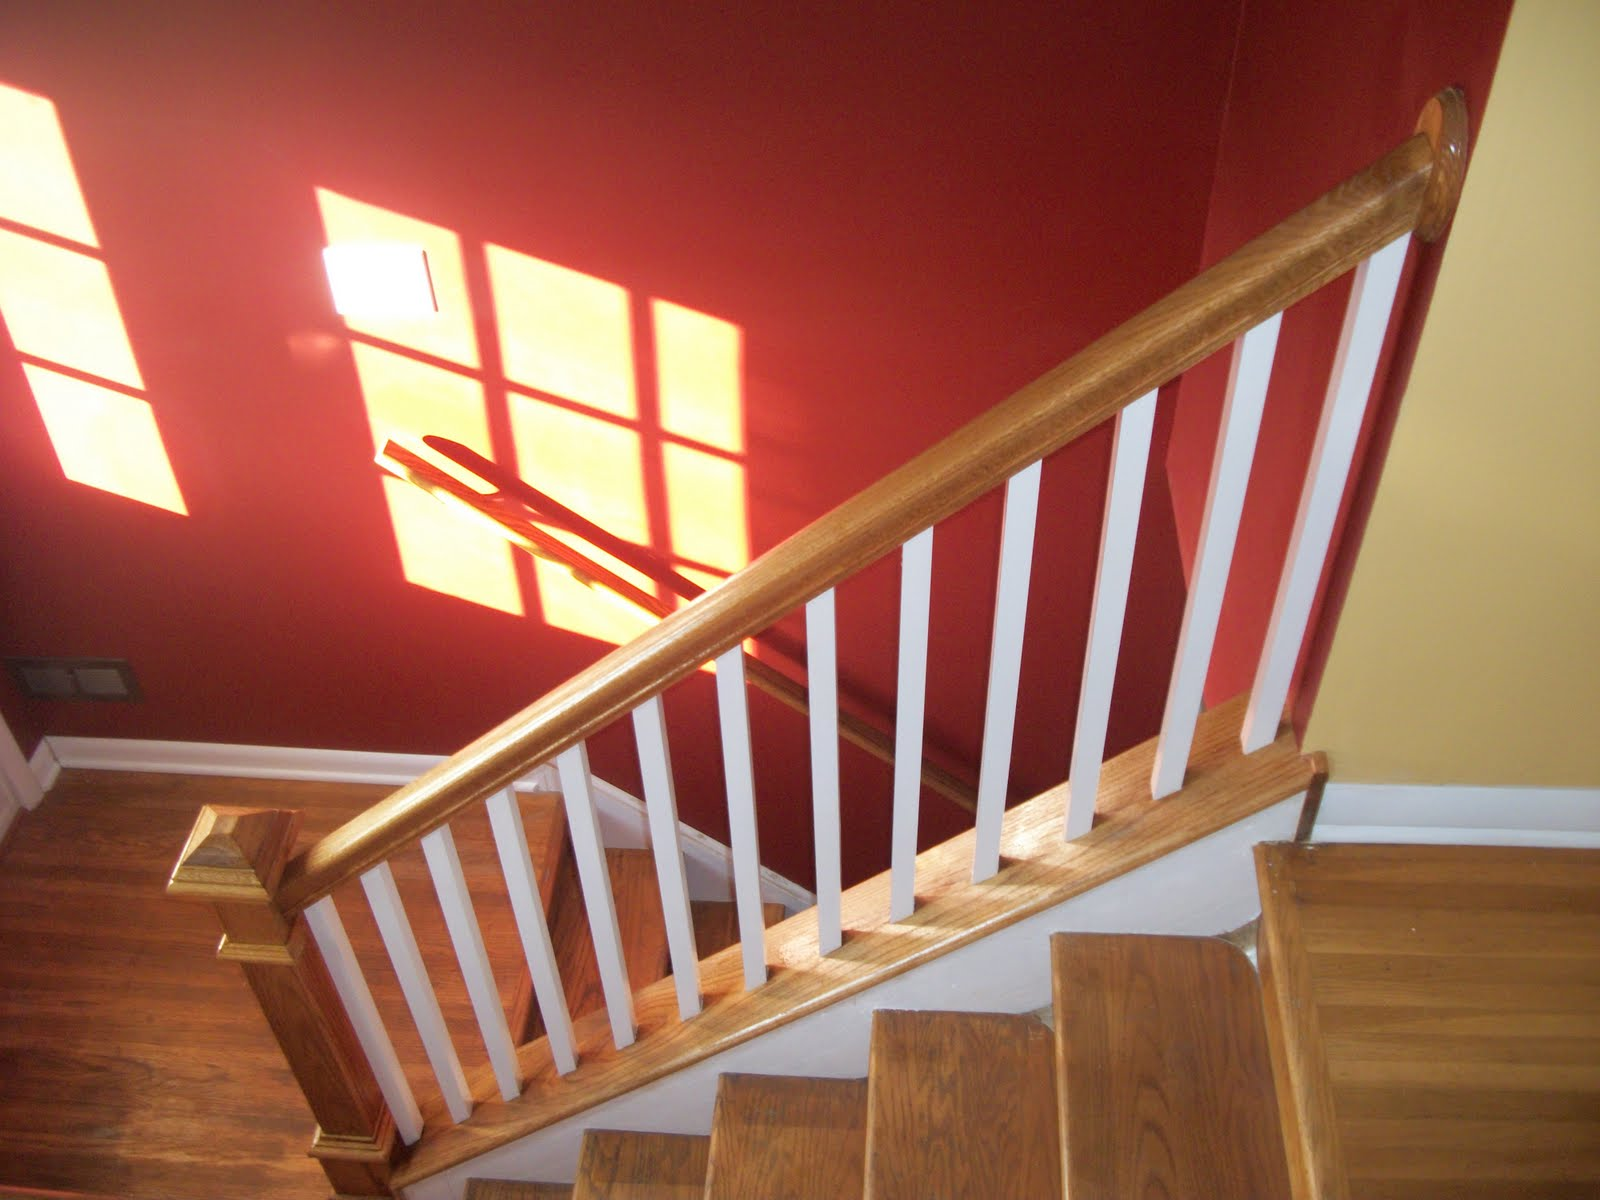 Complete Home Remodeling And Construction 856 956 6425 | Internal Staircase Railing Designs